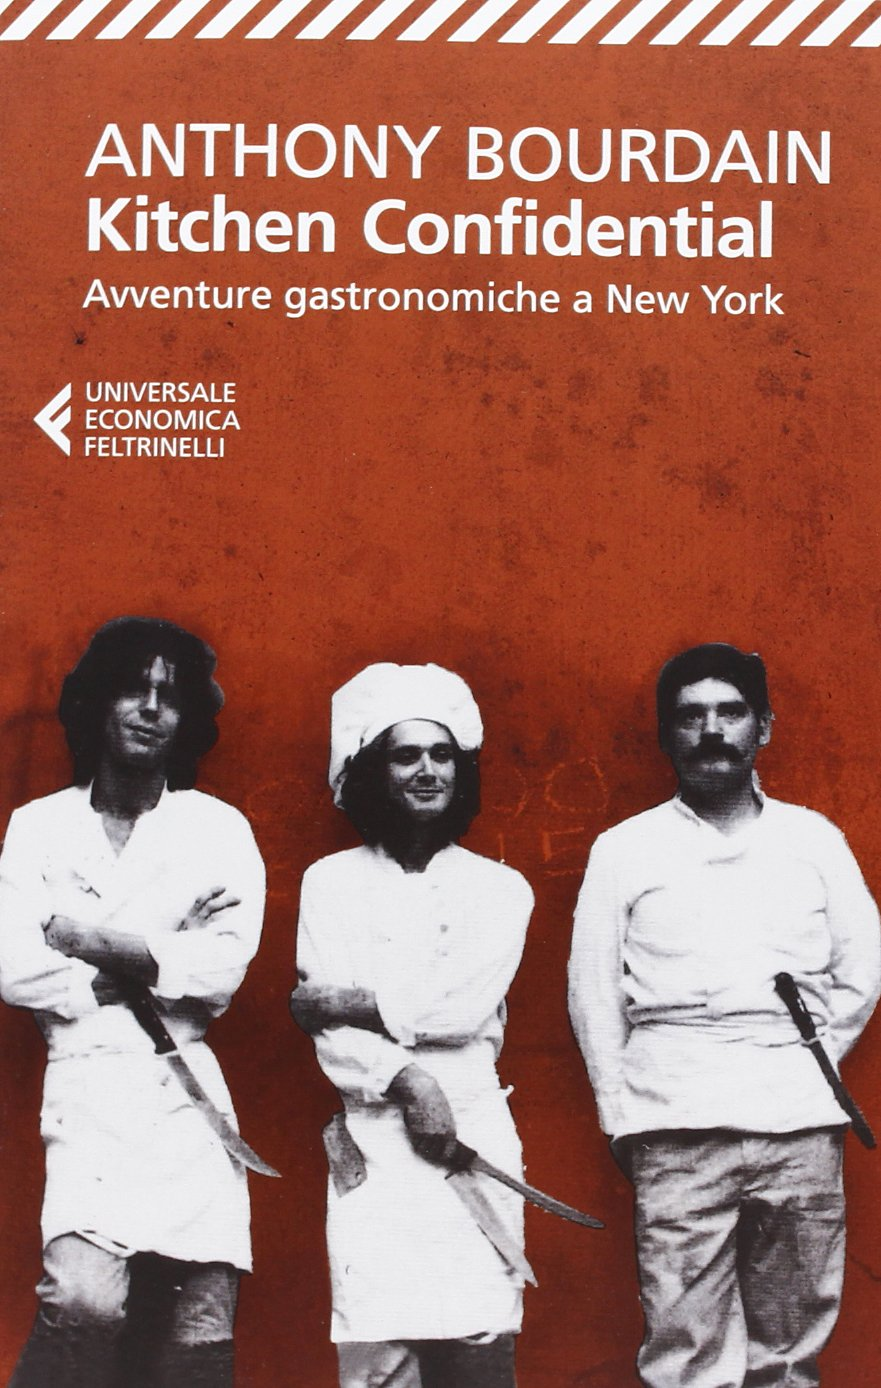 Merveilleux Kitchen Confidential: Amazon.co.uk: Anthony Bourdain: 9788807880292: Books